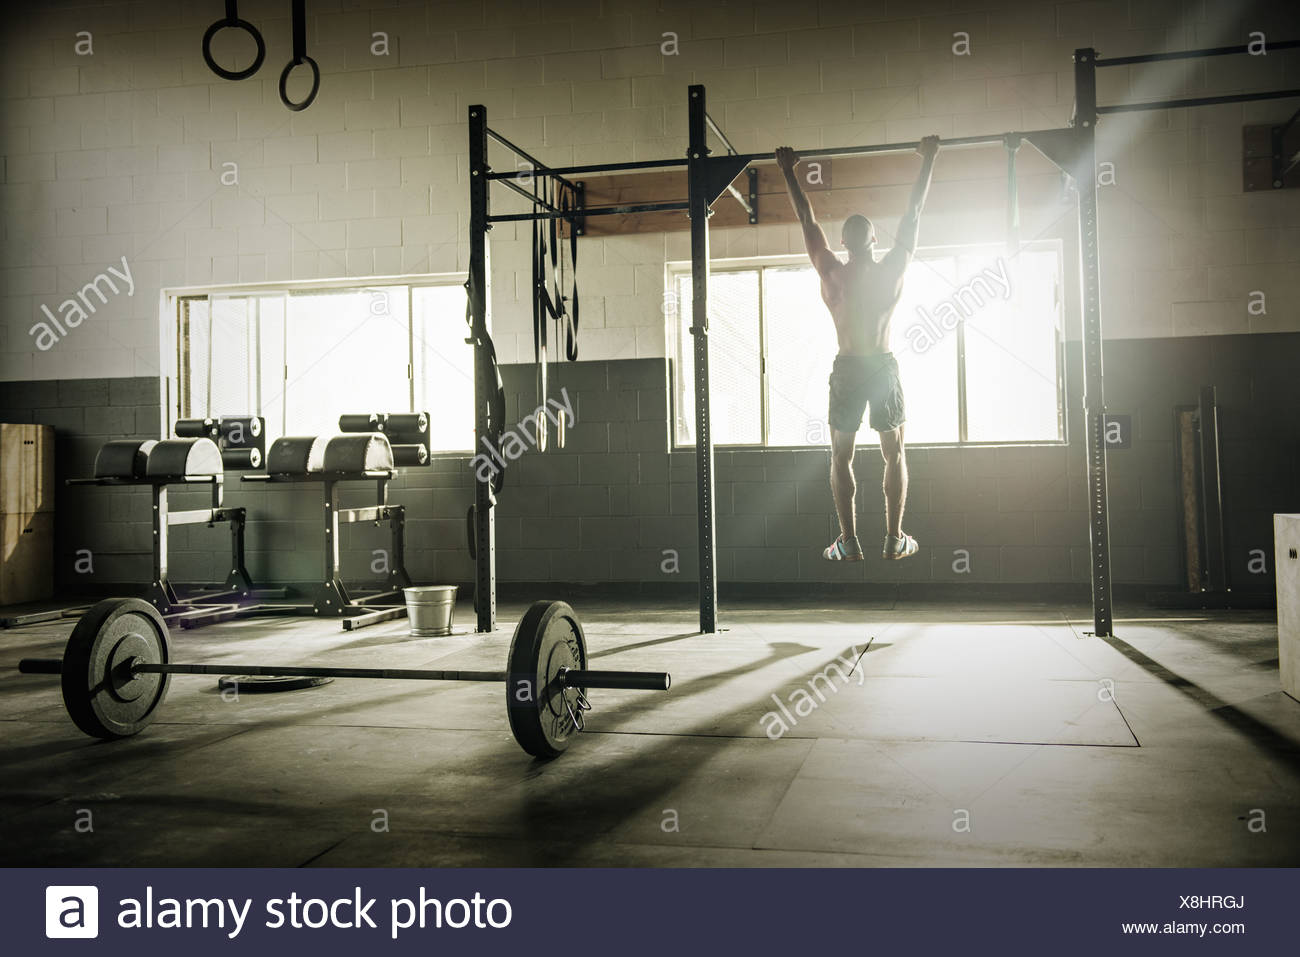 Young man training on exercise bar in gymnasium - Stock Image